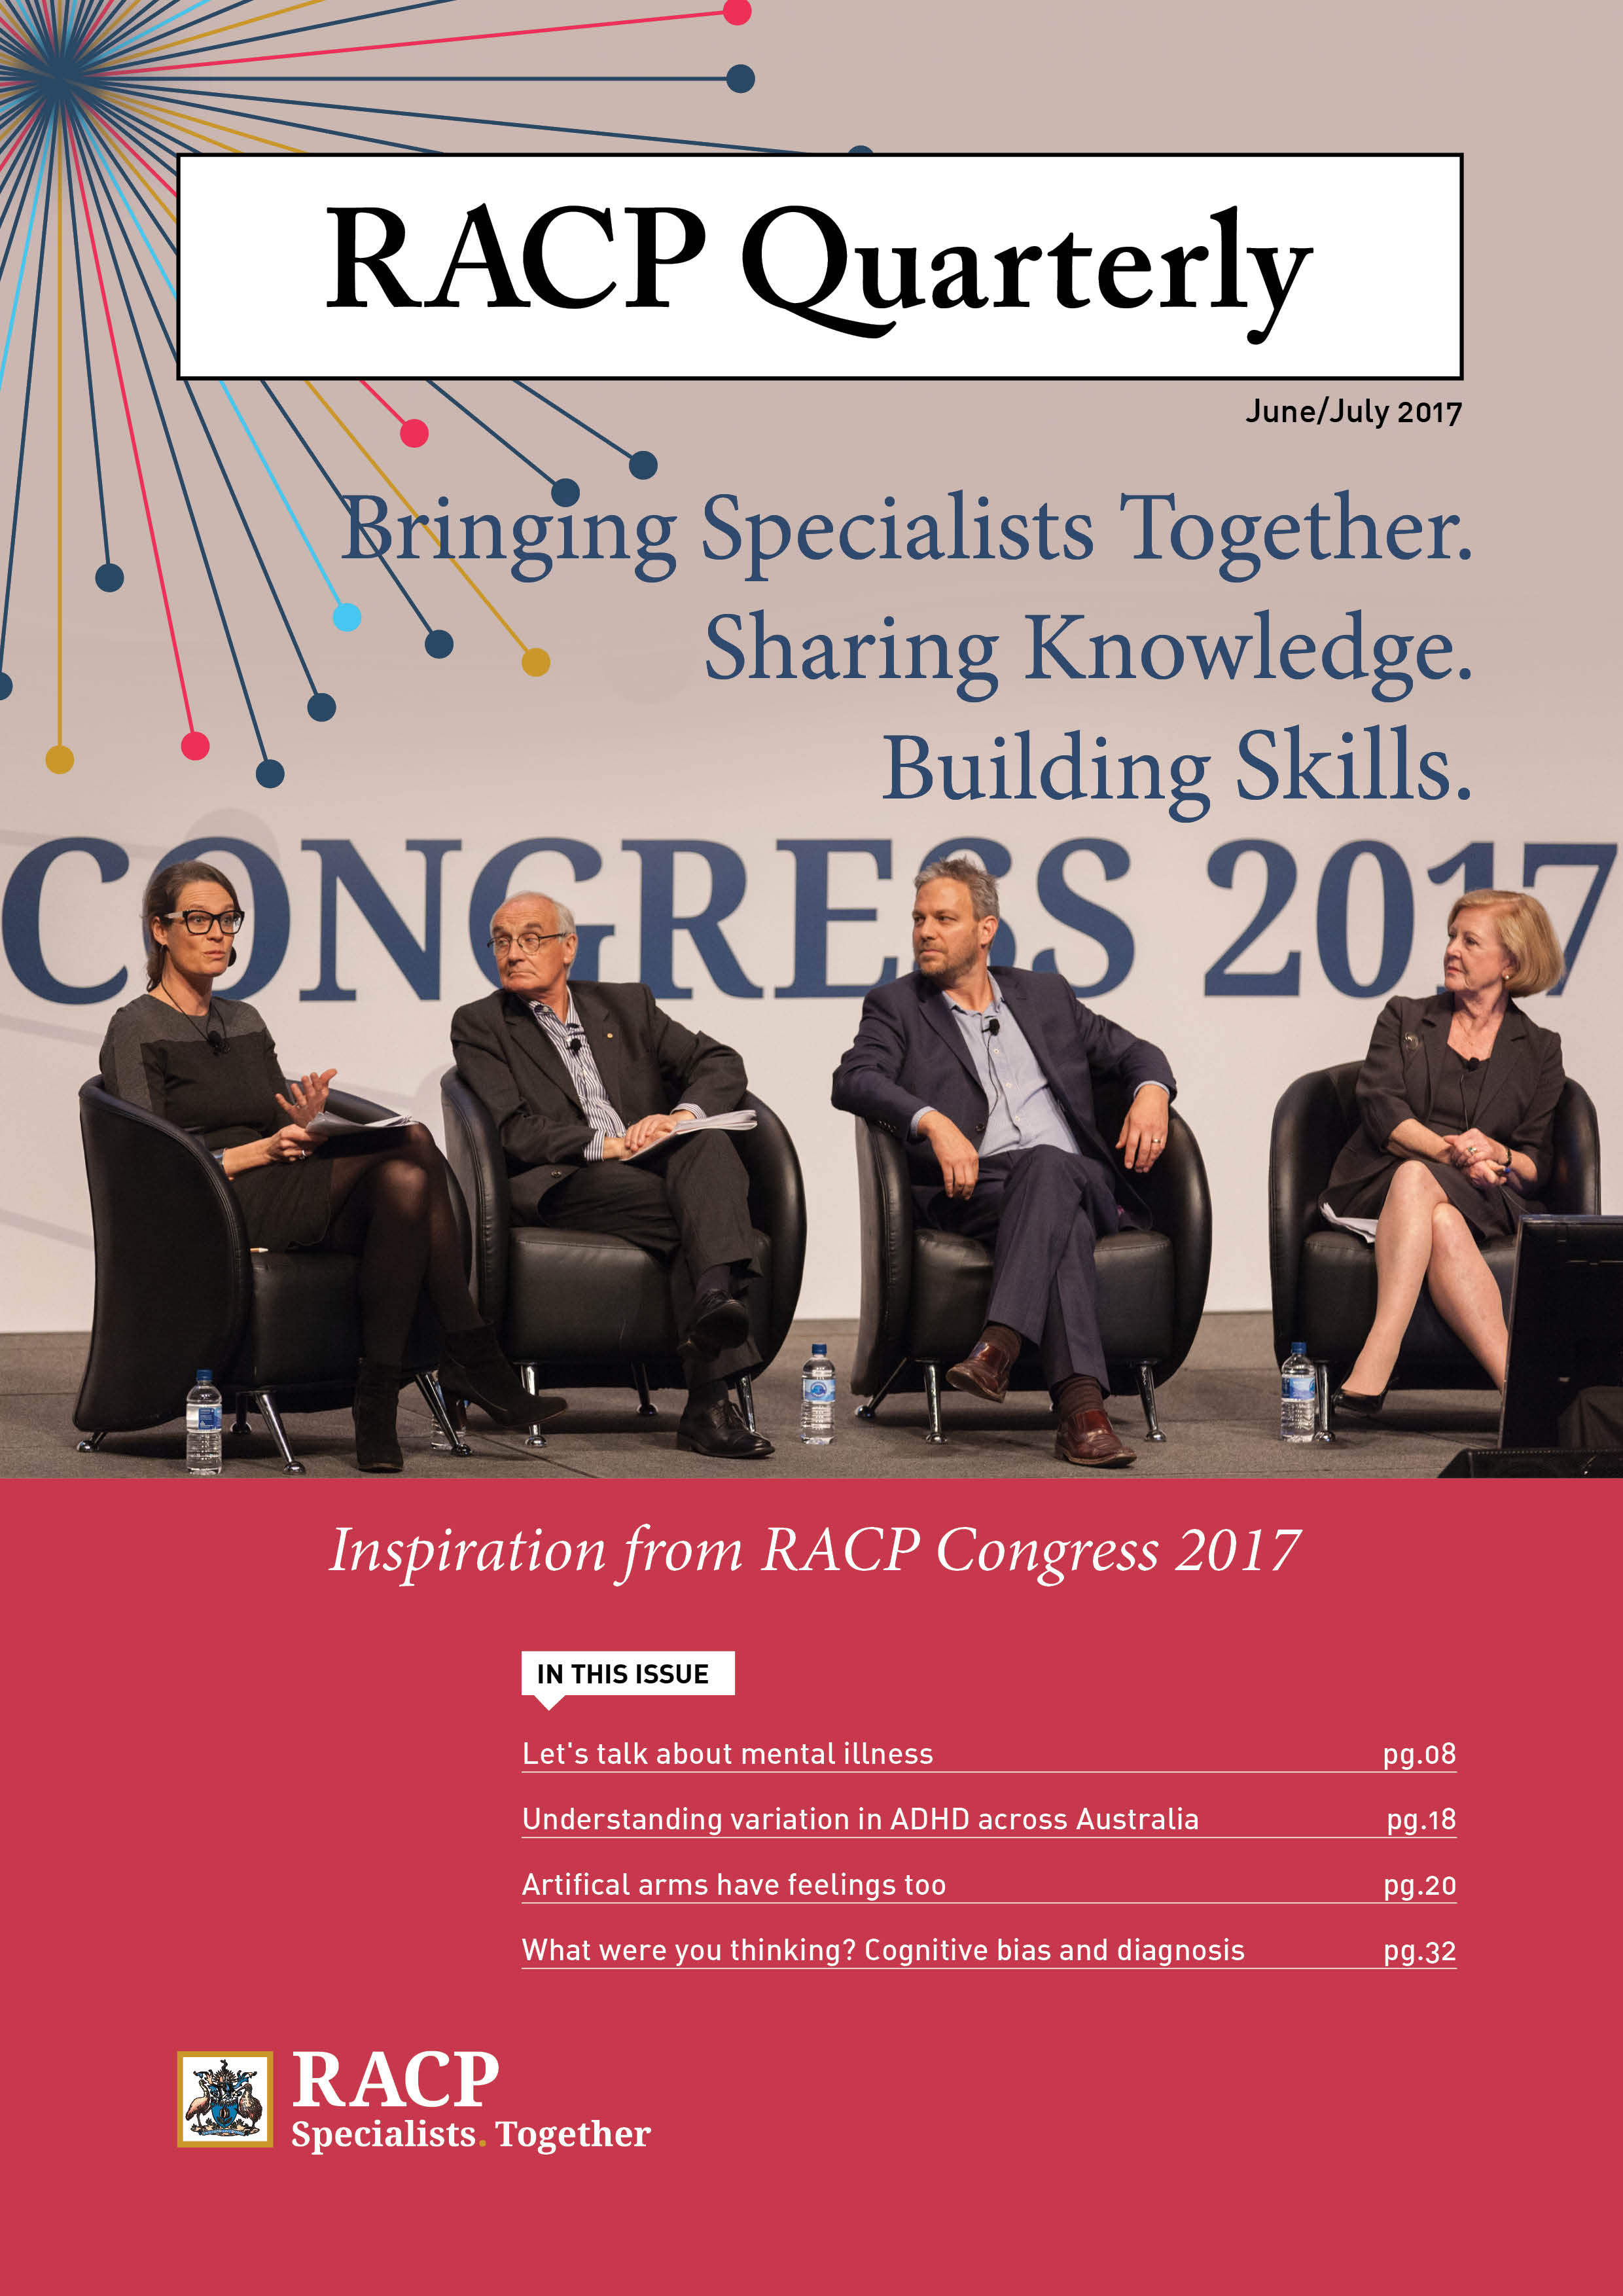 RACP Quarterly June July edition image